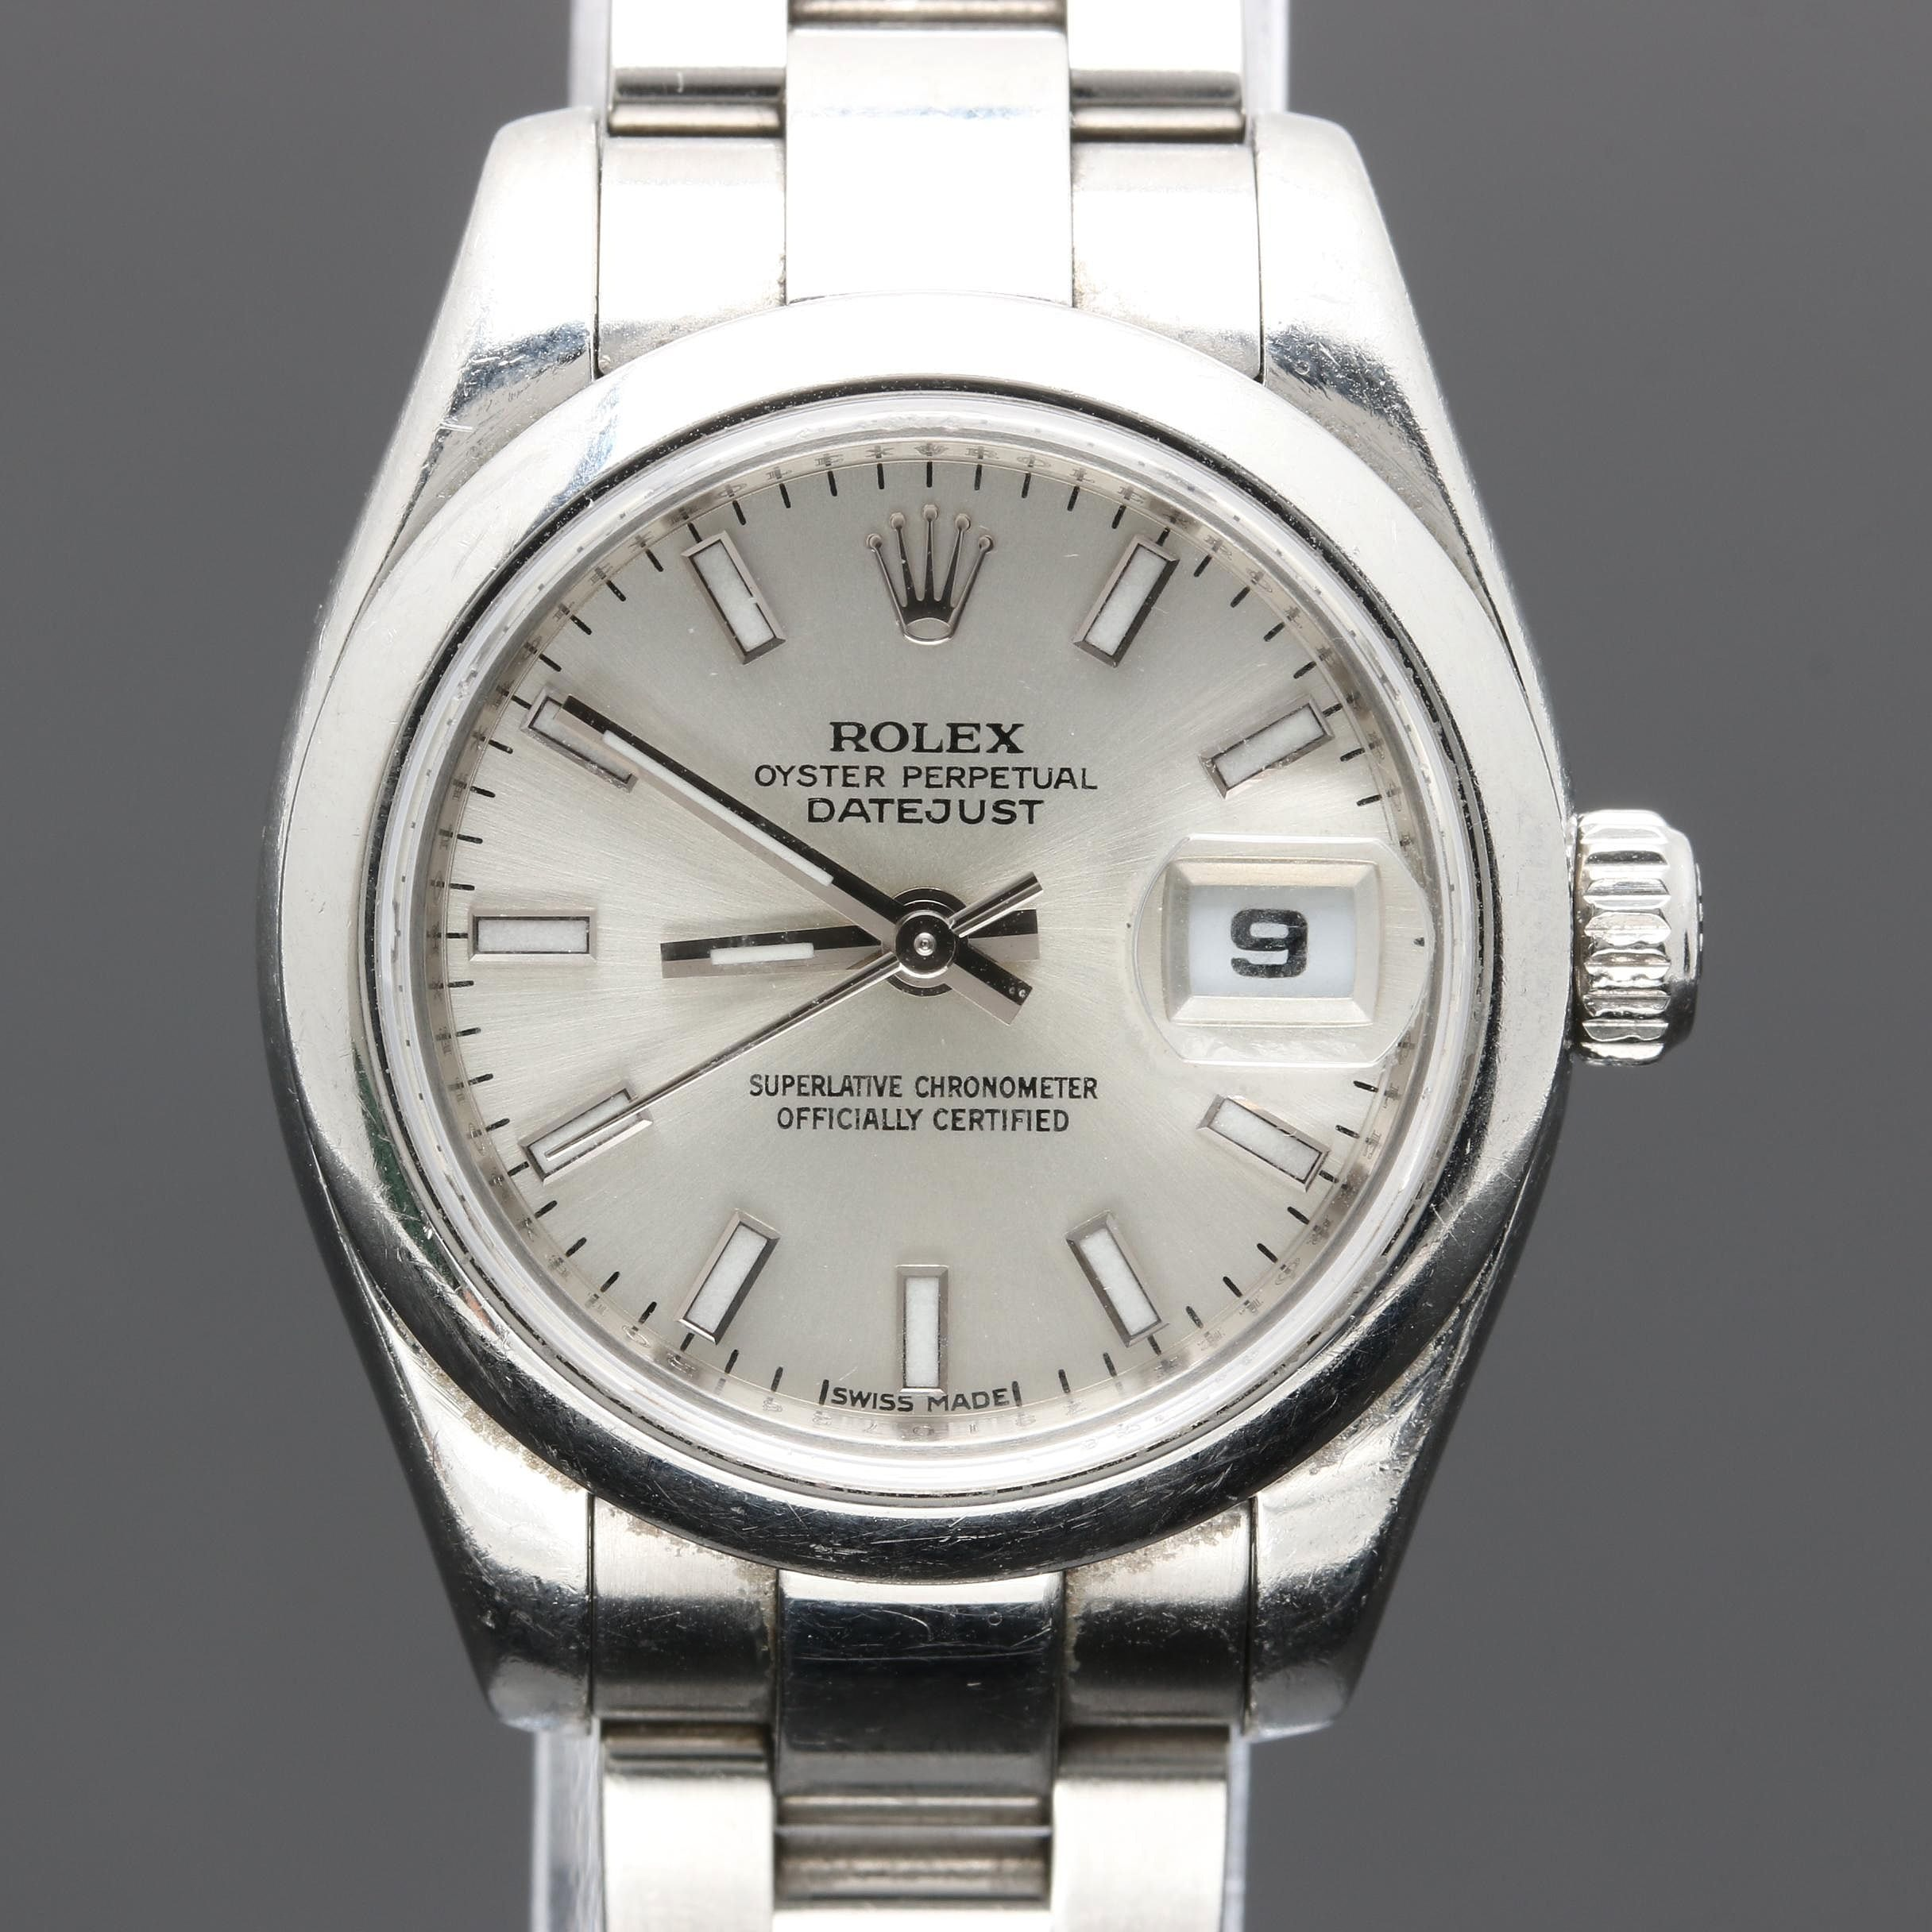 Rolex Perpetual Datejust Stainless Steel Wristwatch